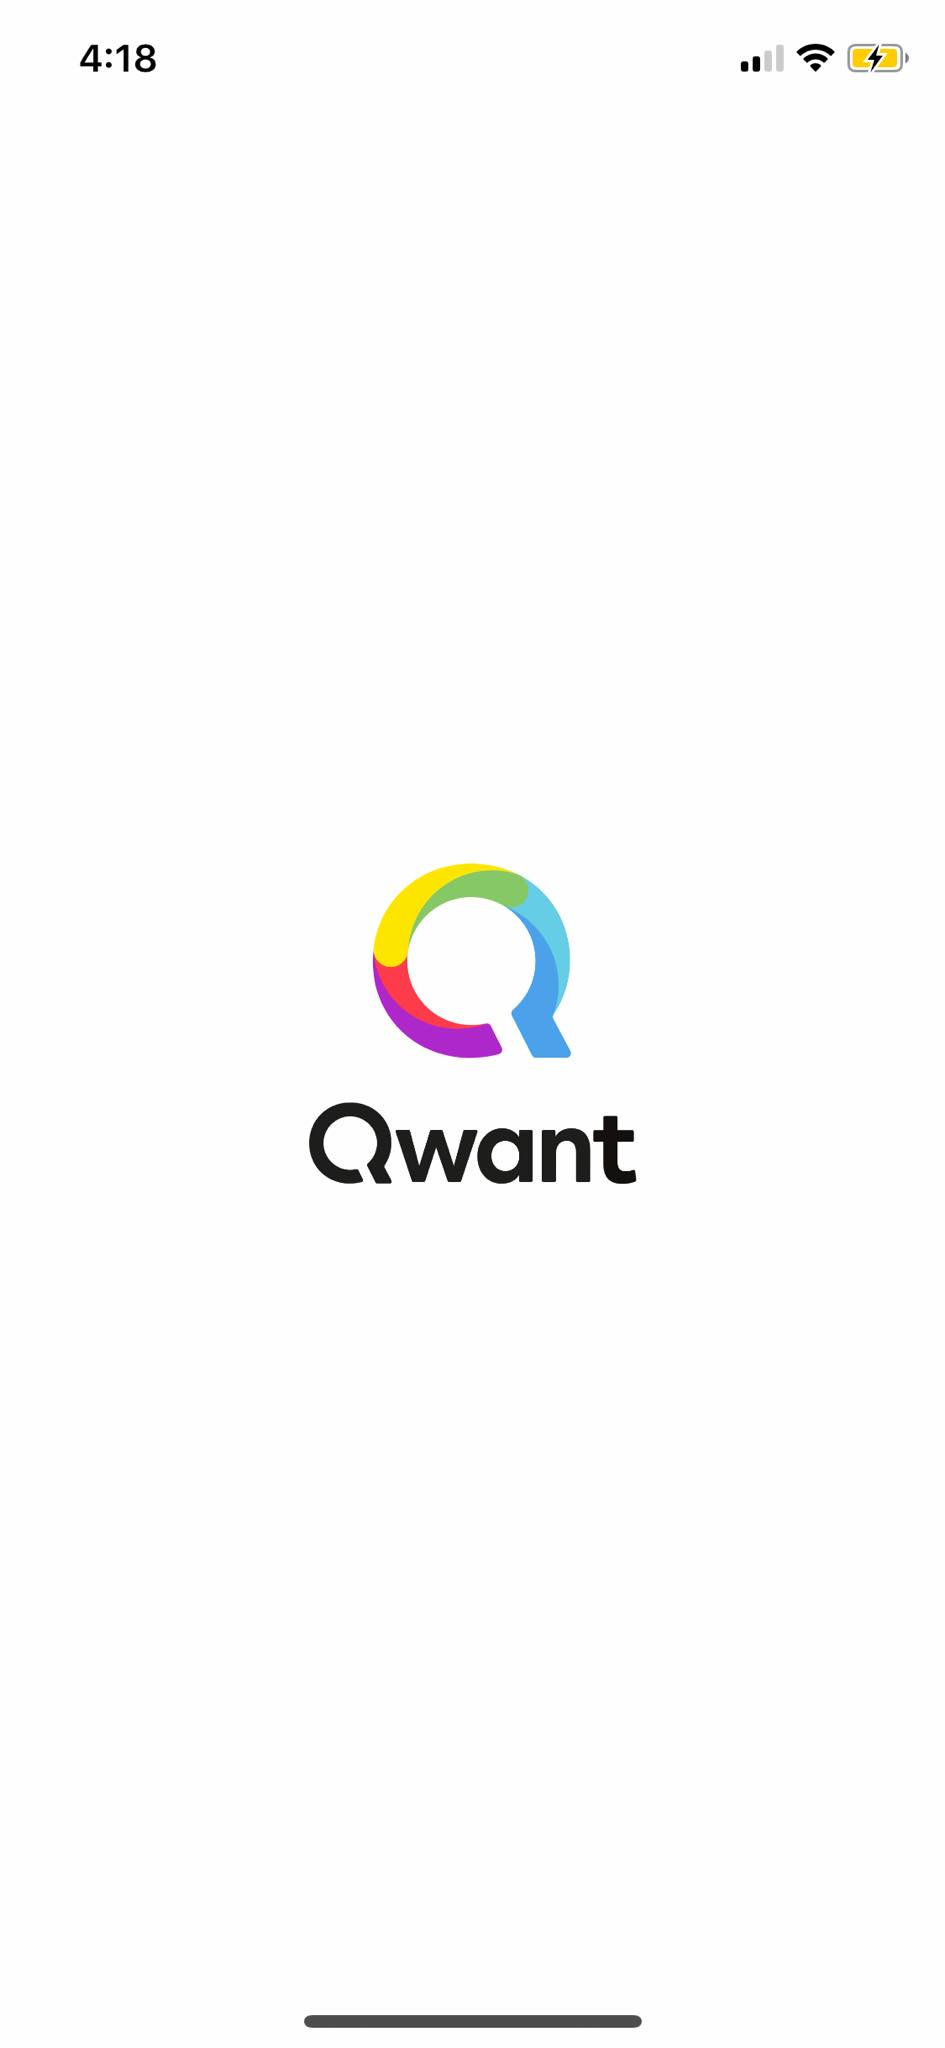 Launchscreen on iOS by Qwant